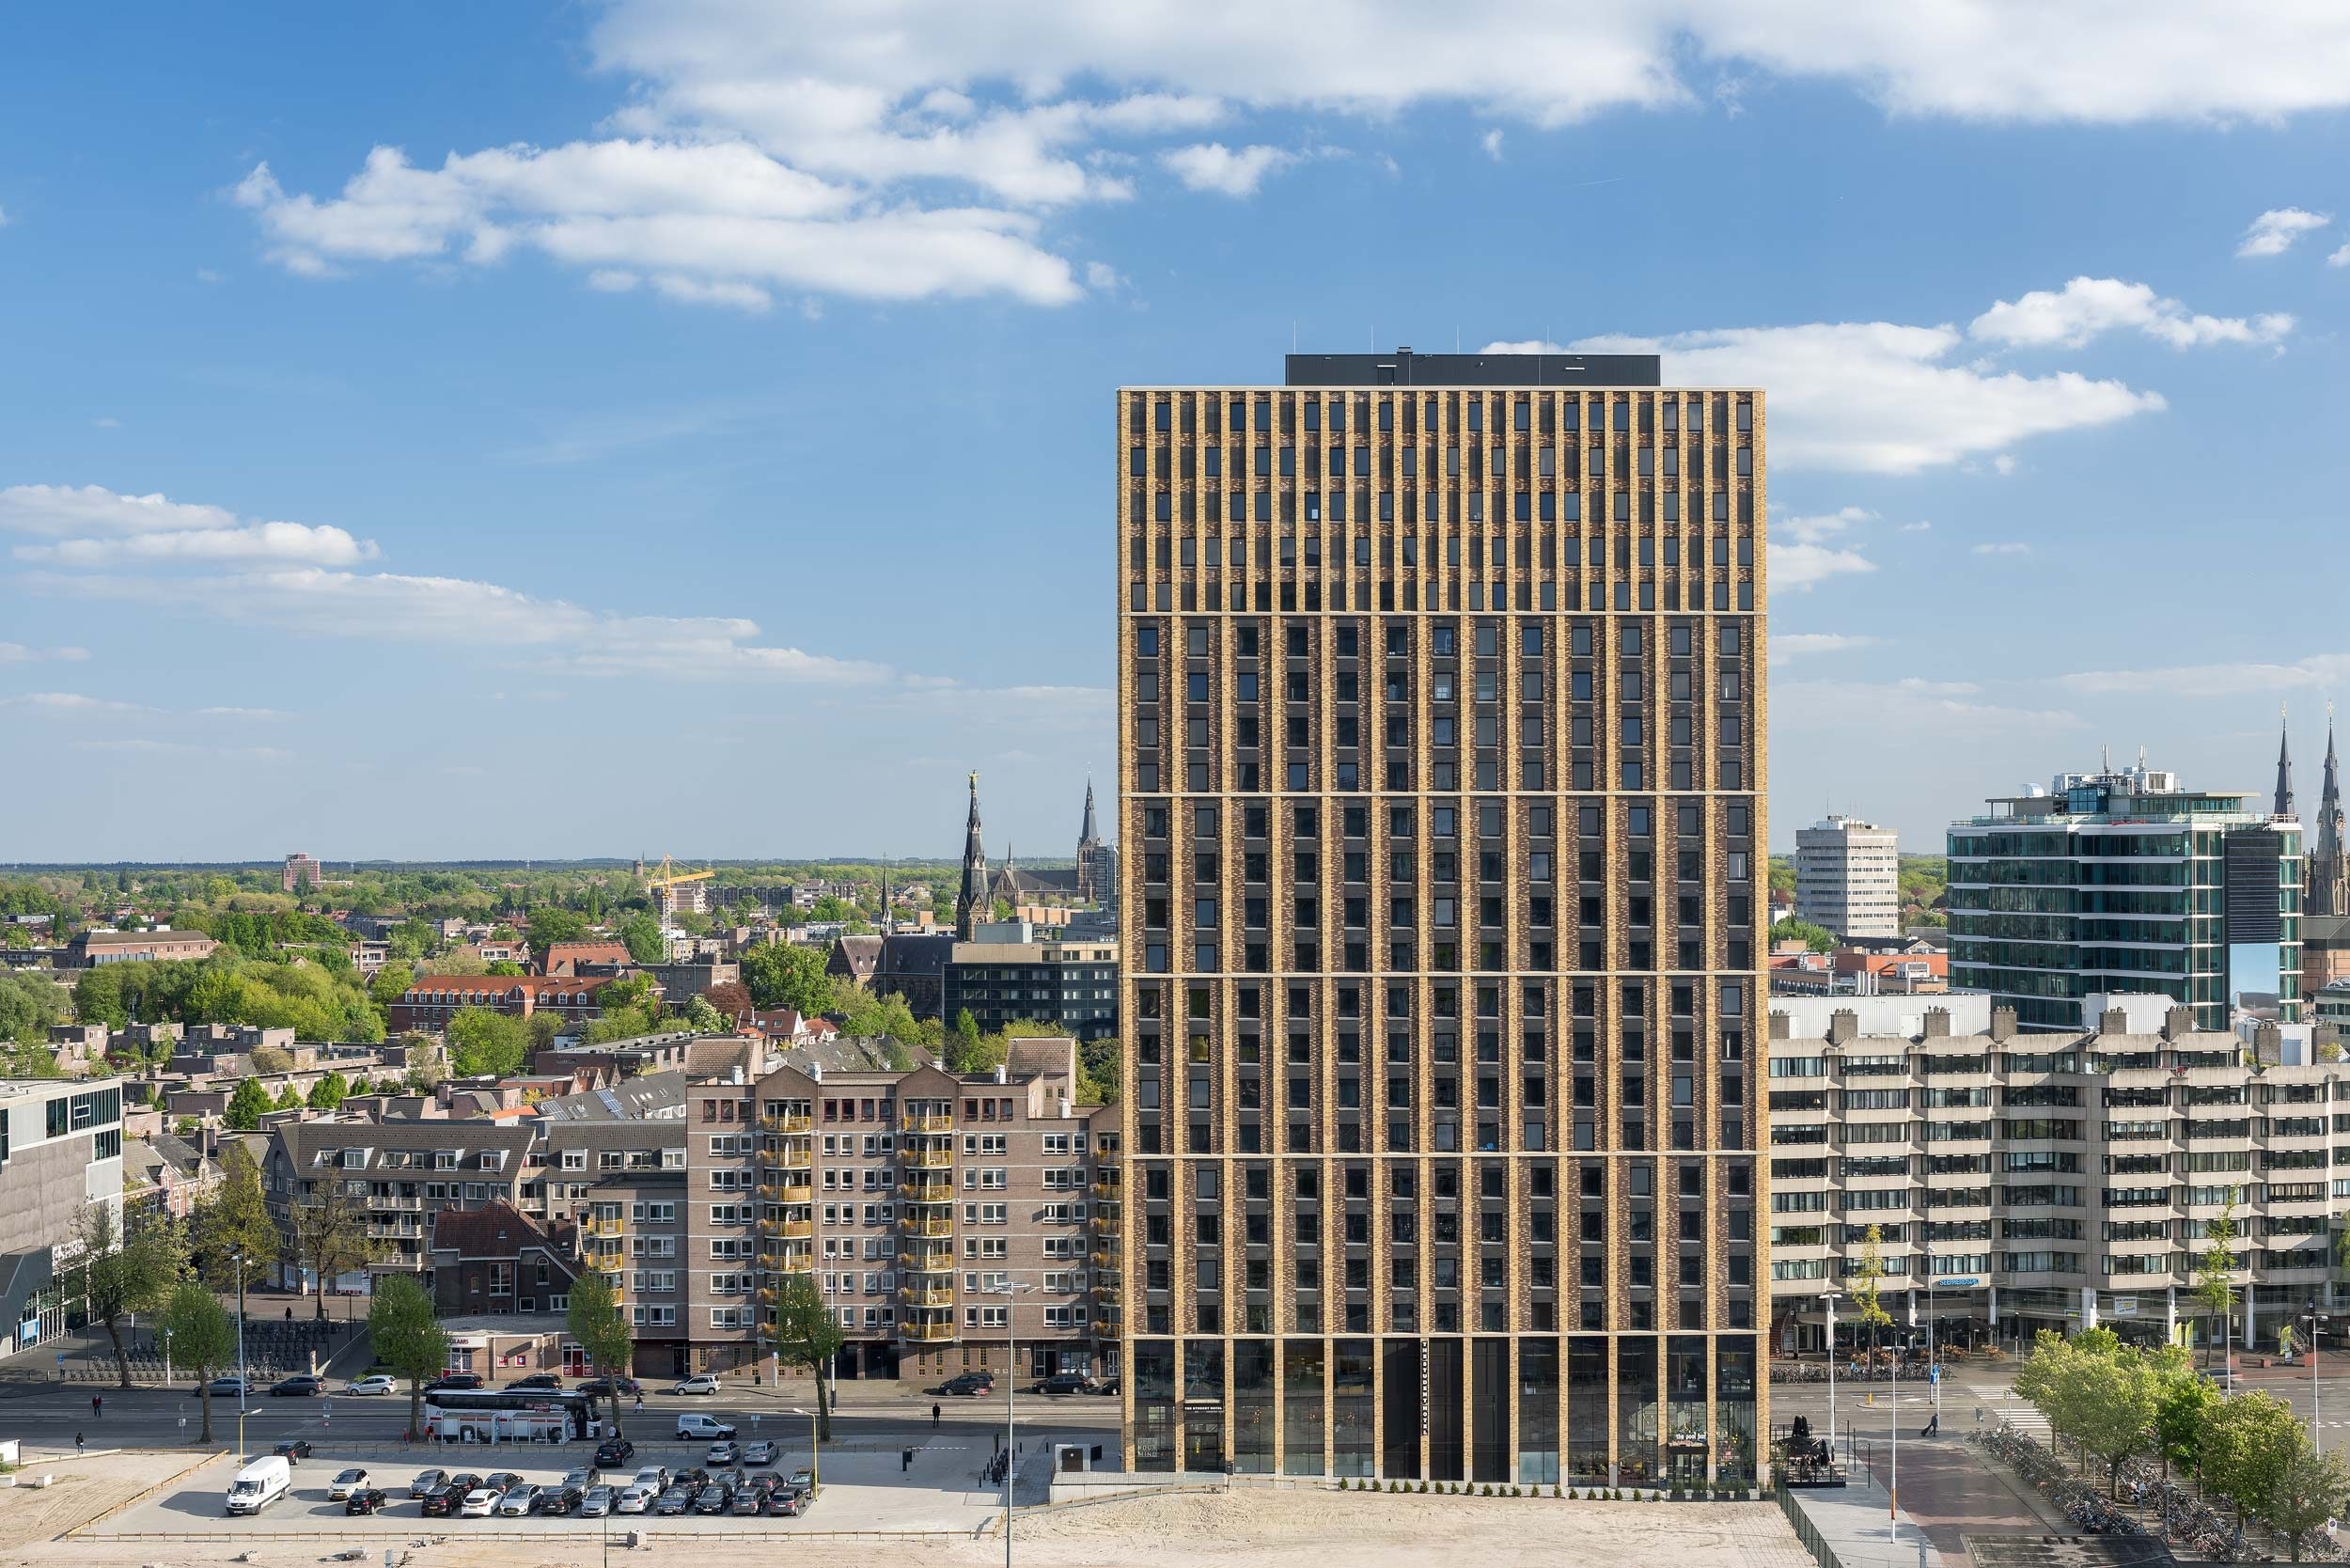 Student Hotel in Eindhoven